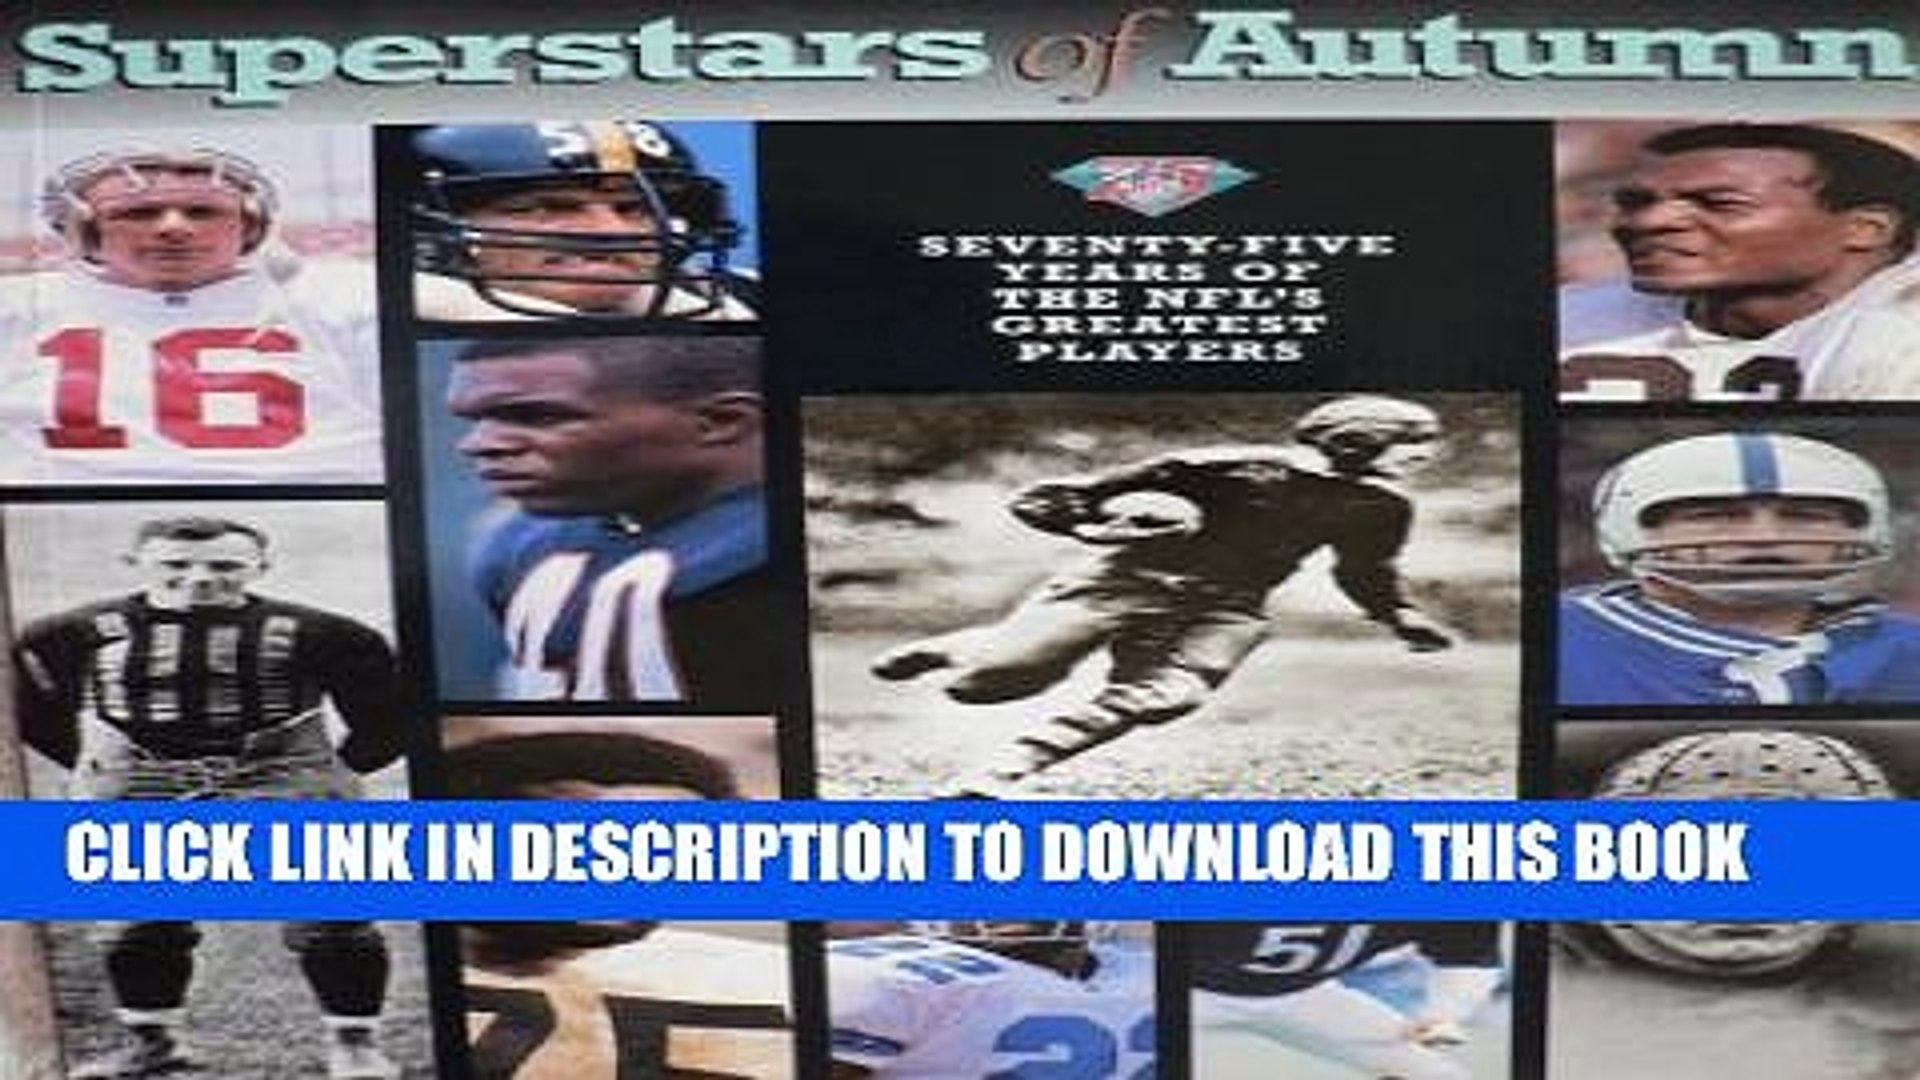 [PDF] Superstars of Autumn: Seventy Five Years of the Nfl s Greatest Players Popular Online